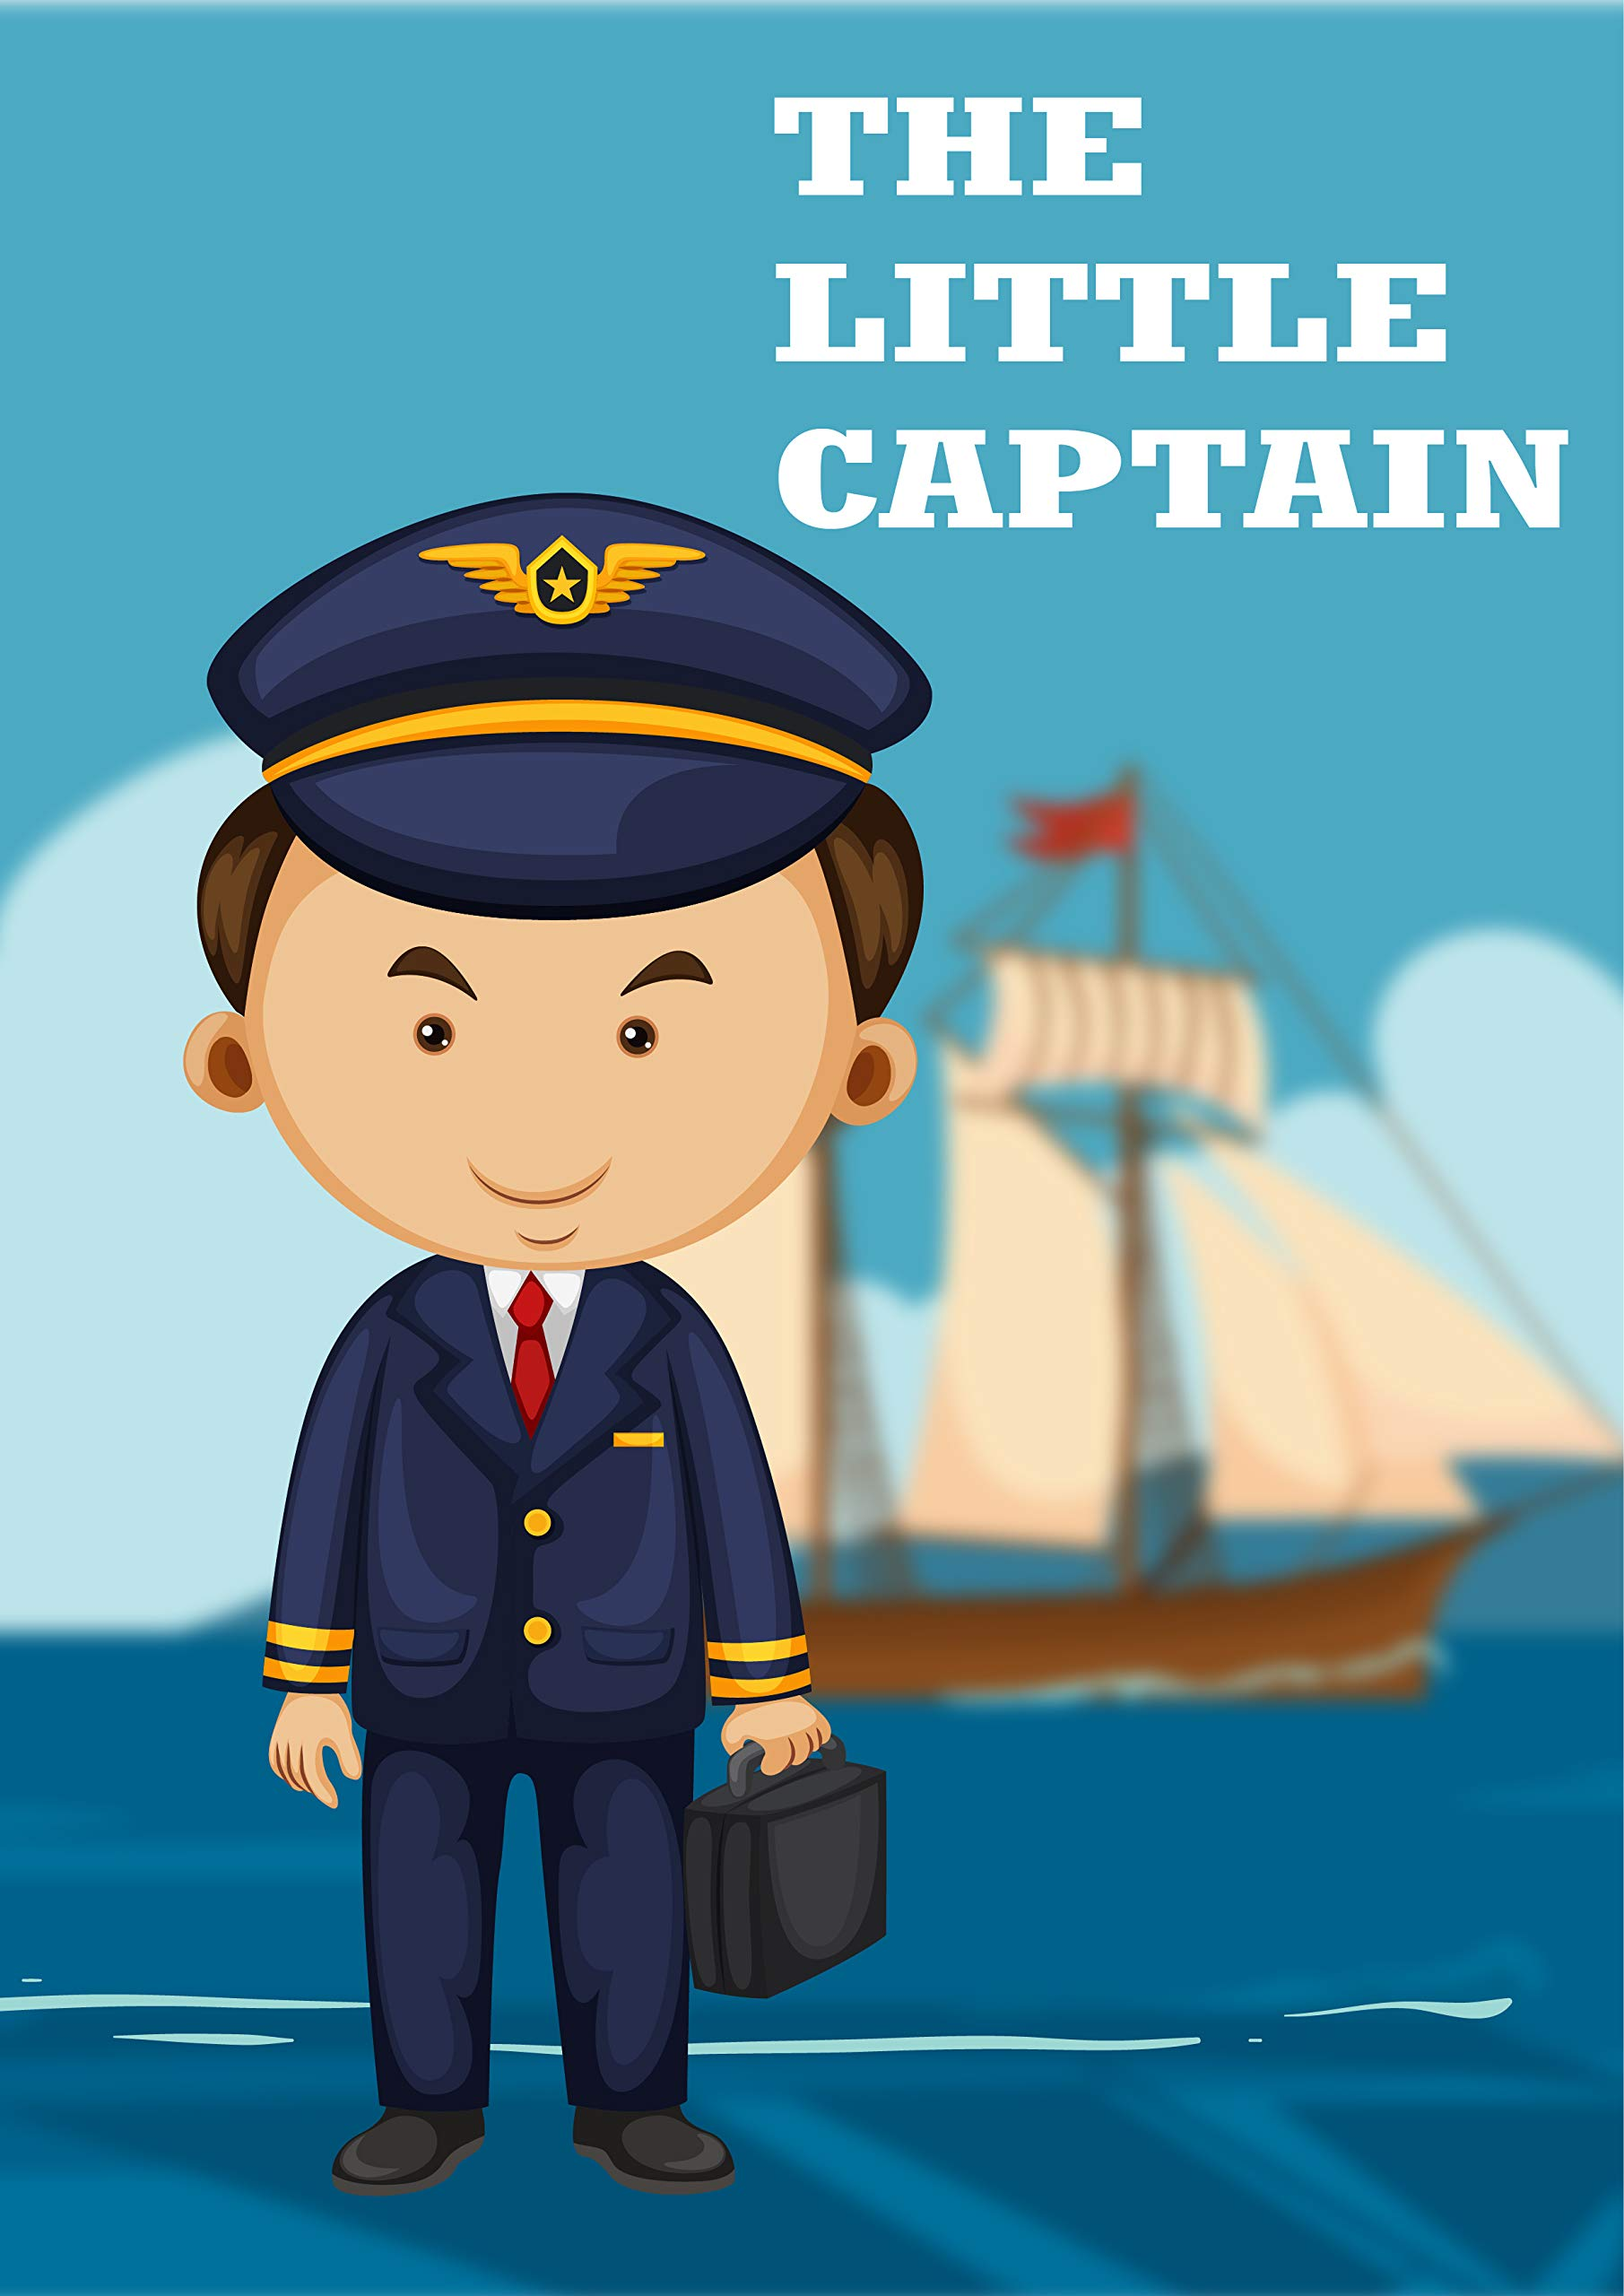 THE LITTLE CAPTAIN: Short story for kids all ages